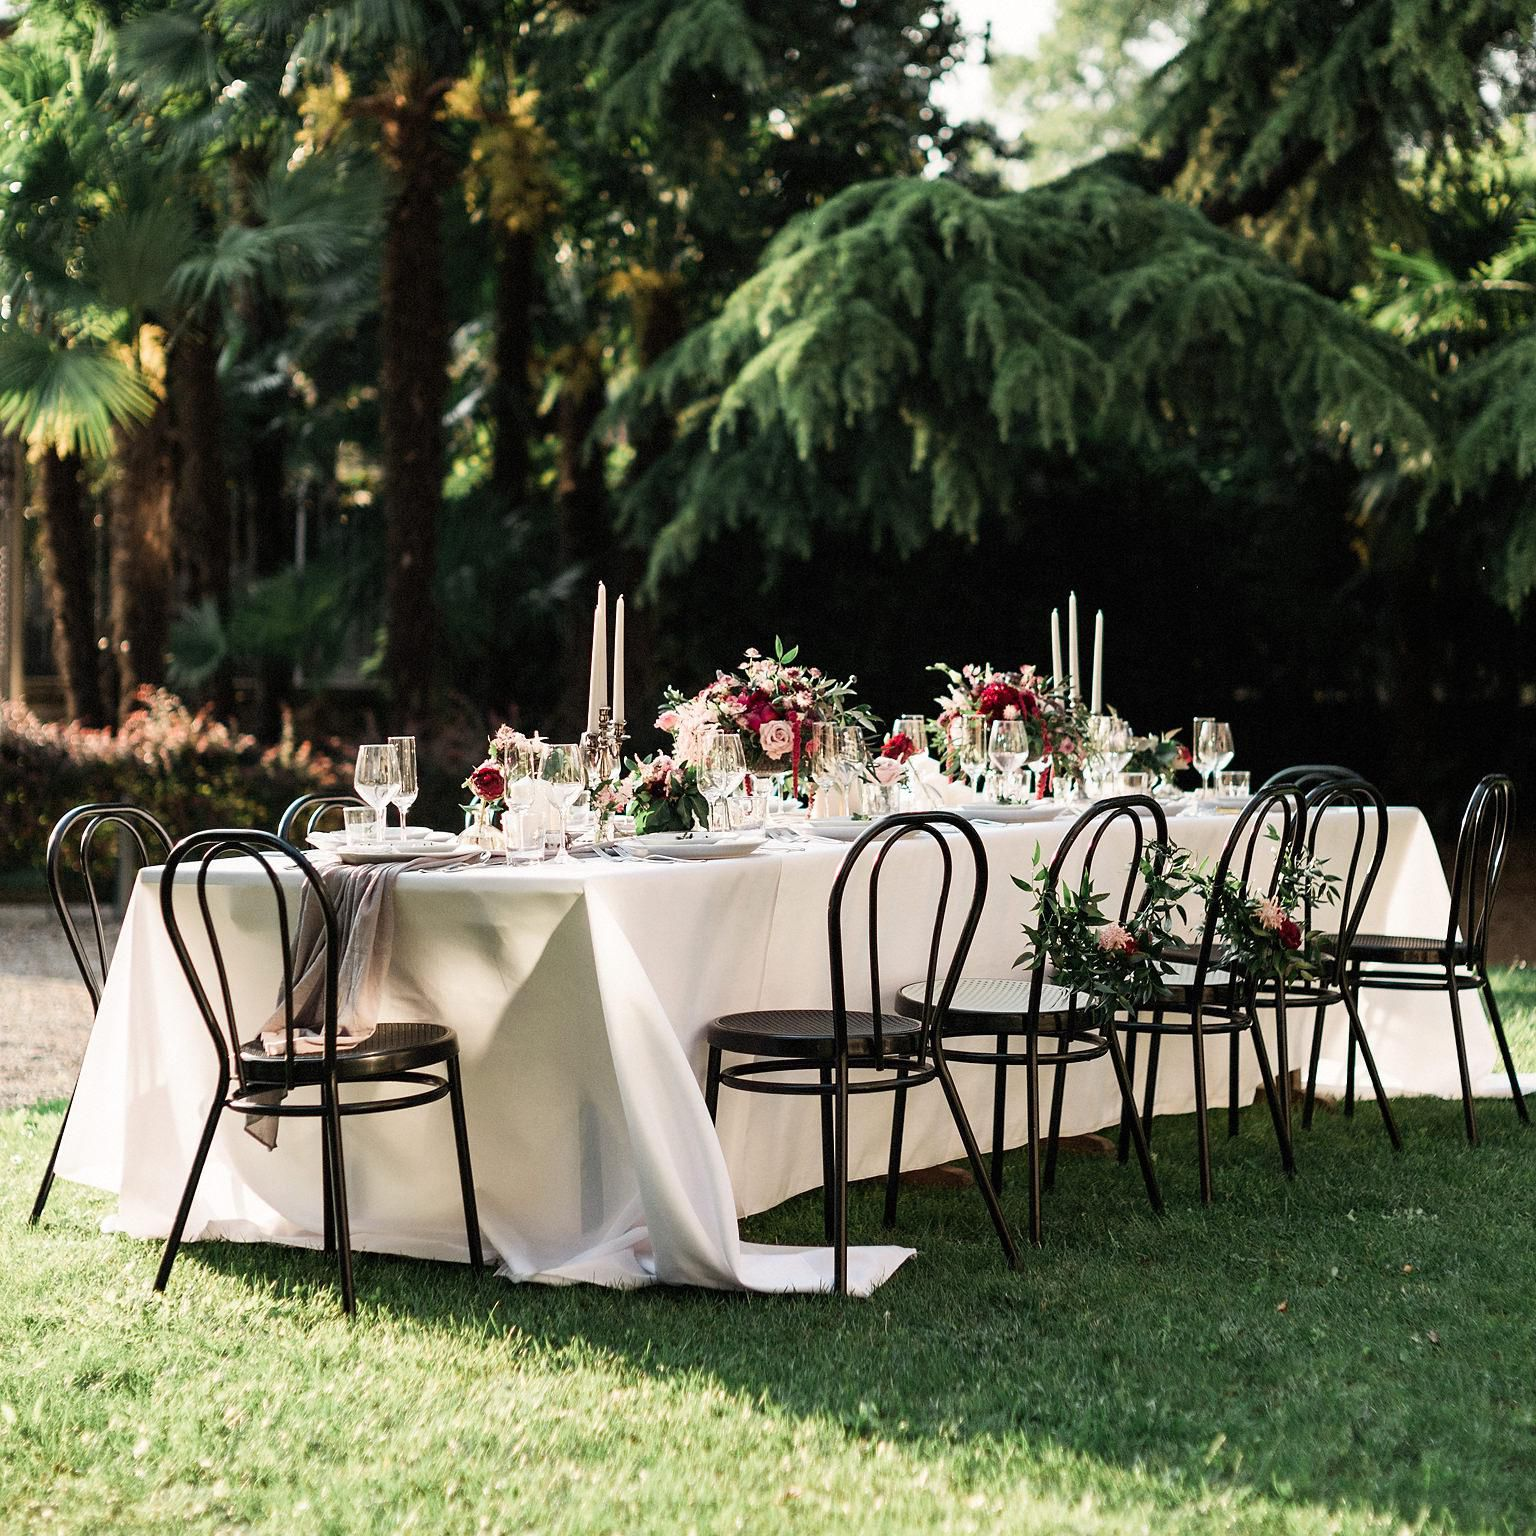 30 Small Wedding Ideas For An Intimate Affair